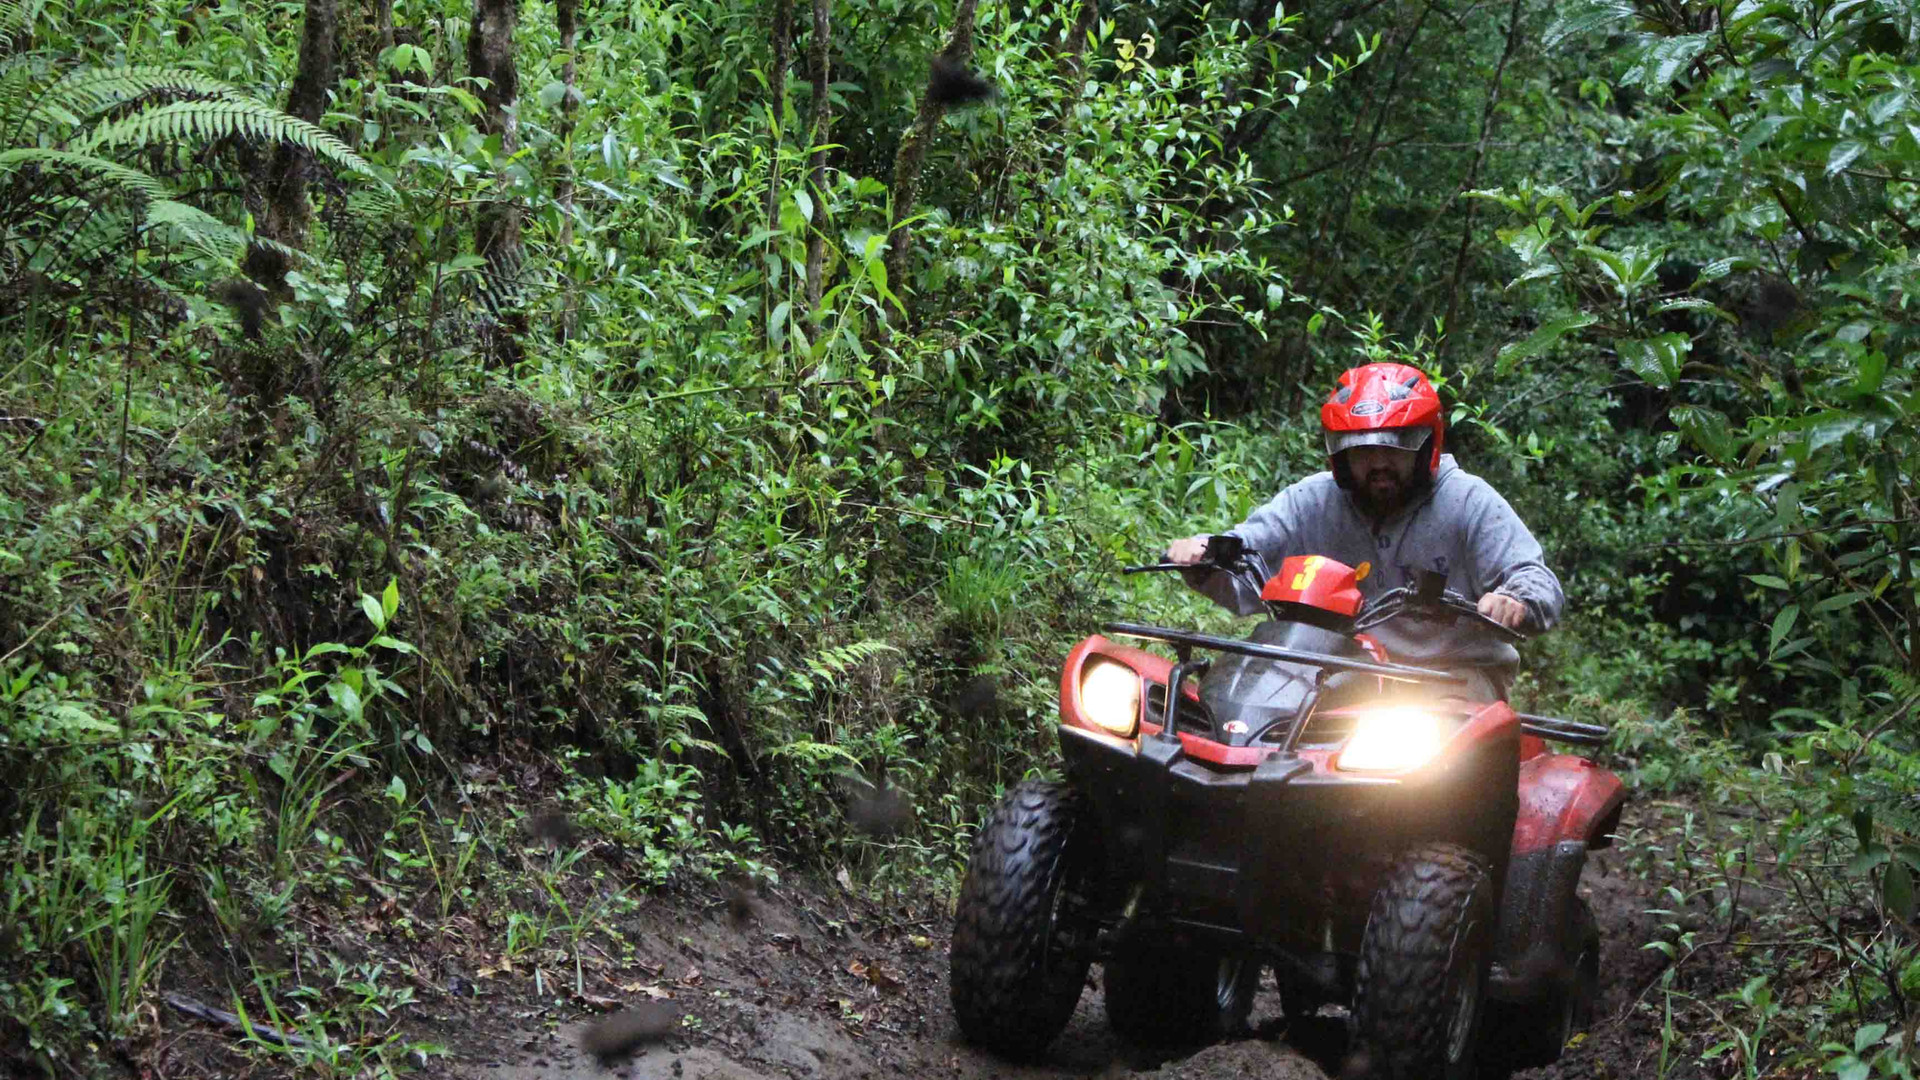 Monteverde Costa Rica ATV adventure tour group driving riding up mountain on mud trail with lights on